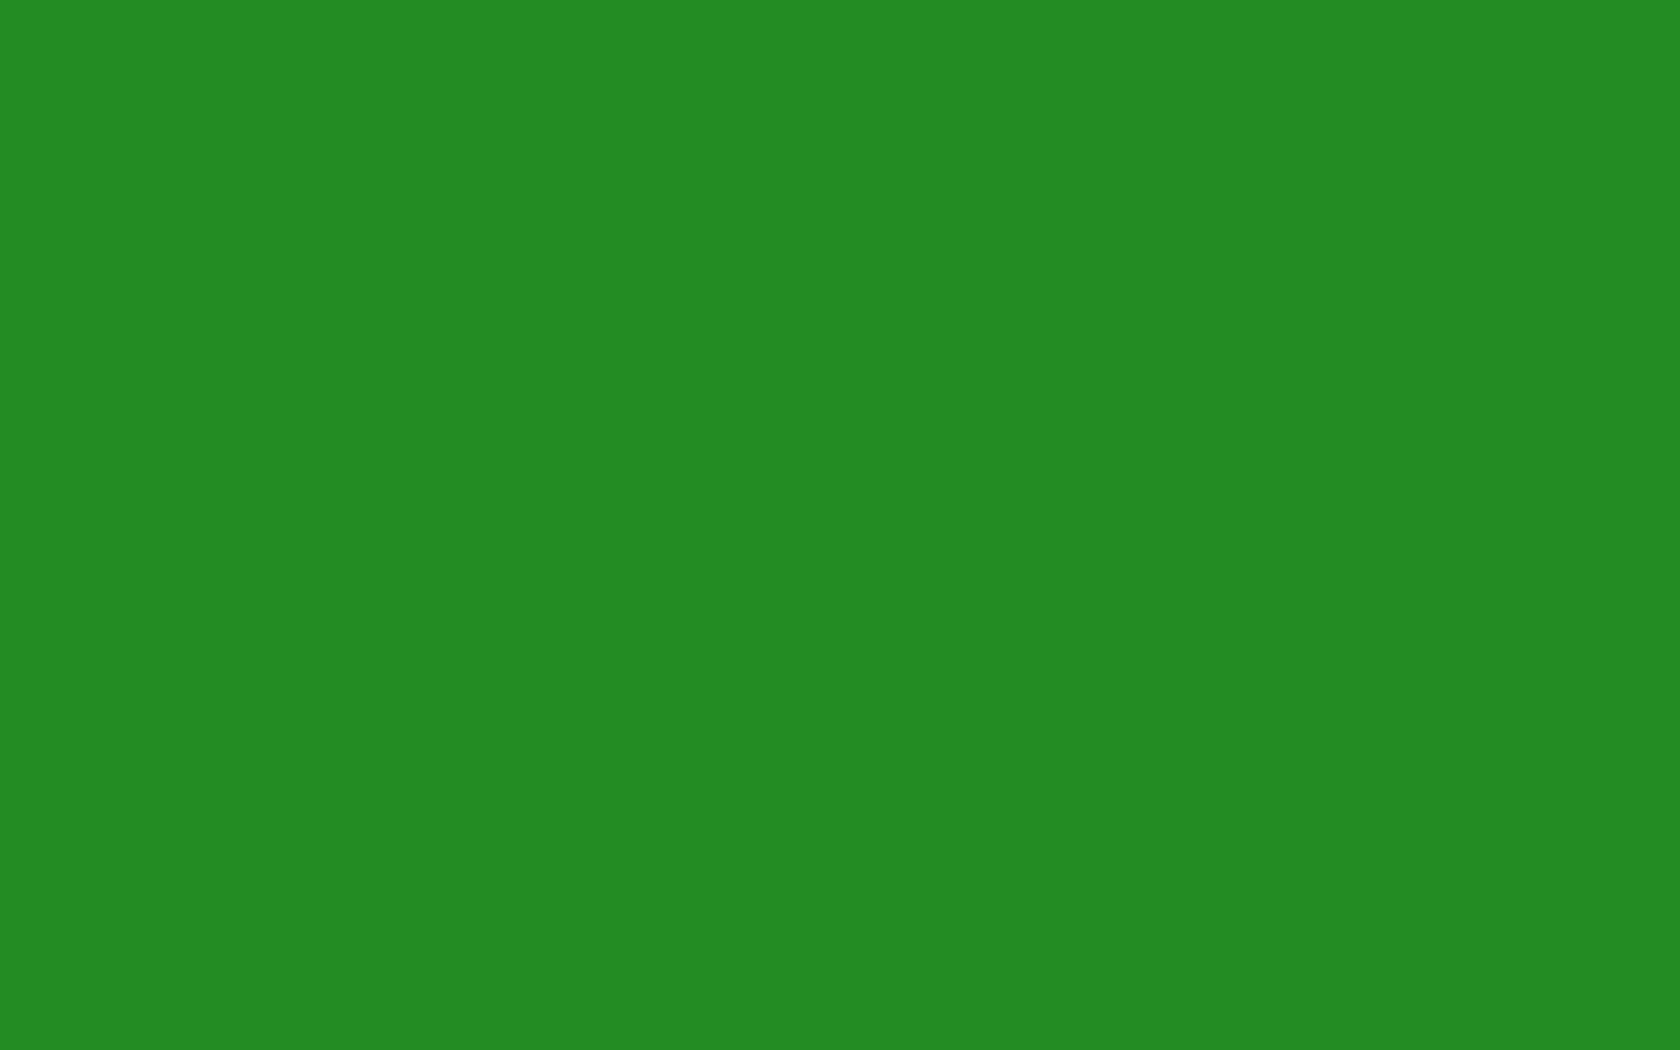 1680x1050 Forest Green For Web Solid Color Background